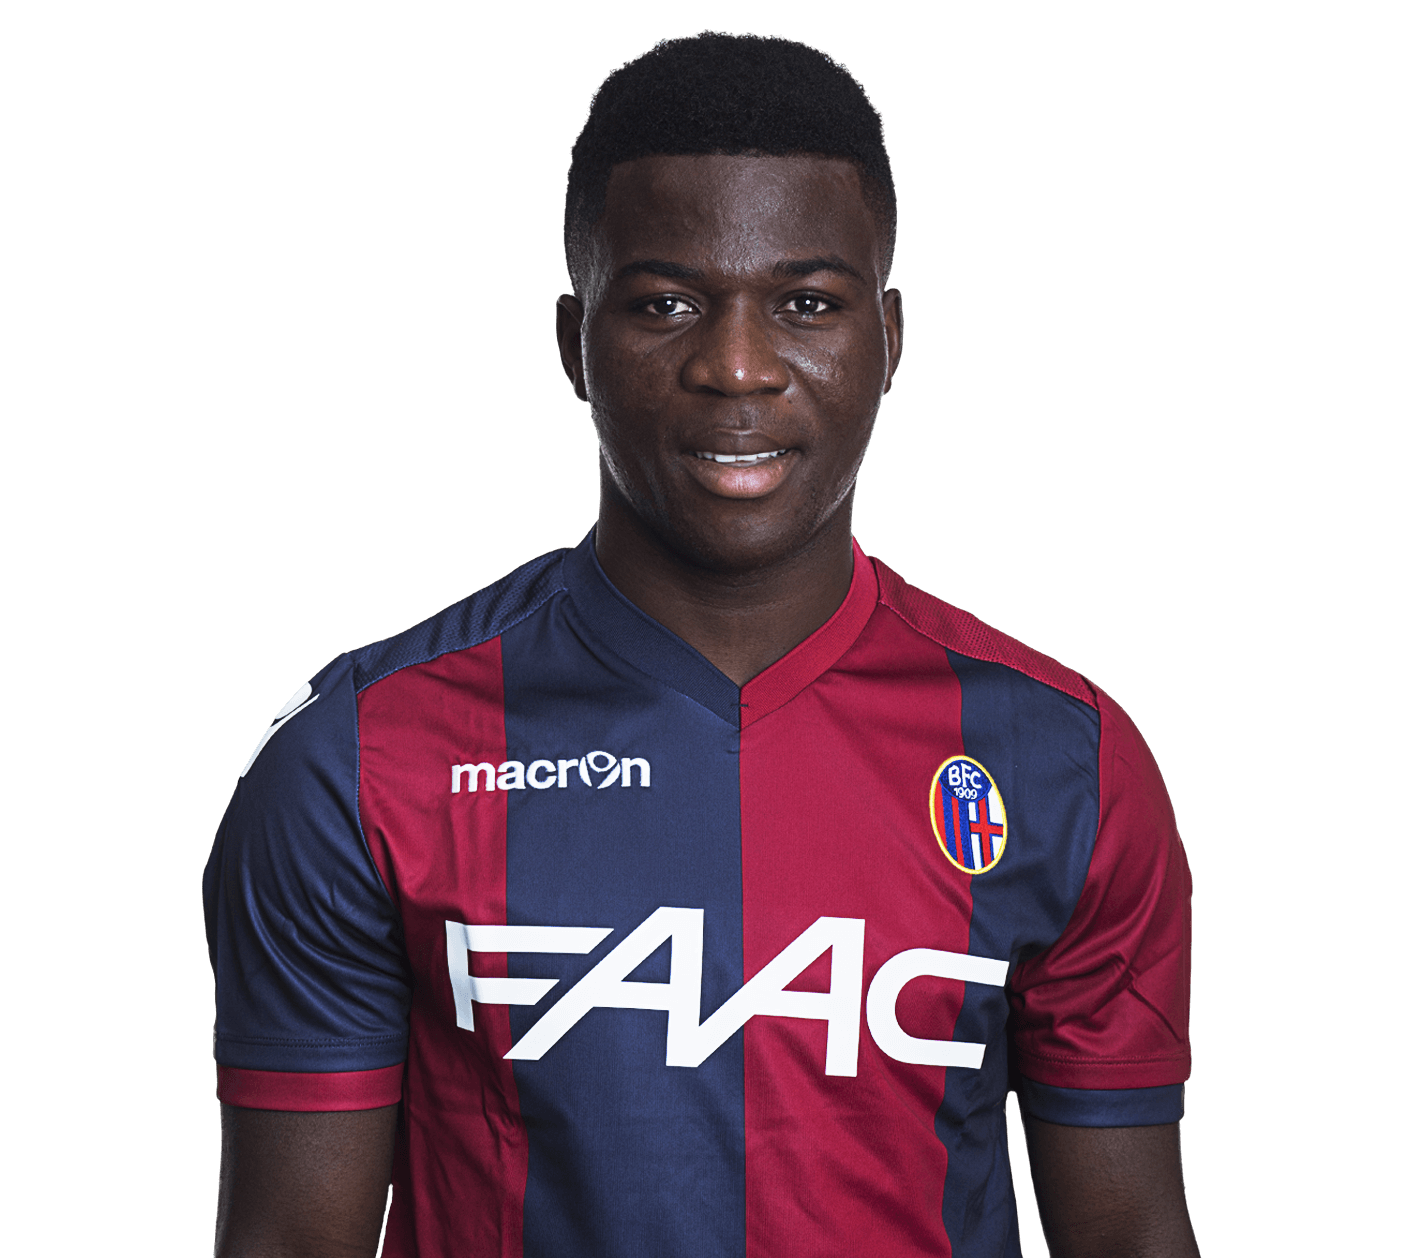 Bologna place €10m on the head of midfielder Godfred Donsah